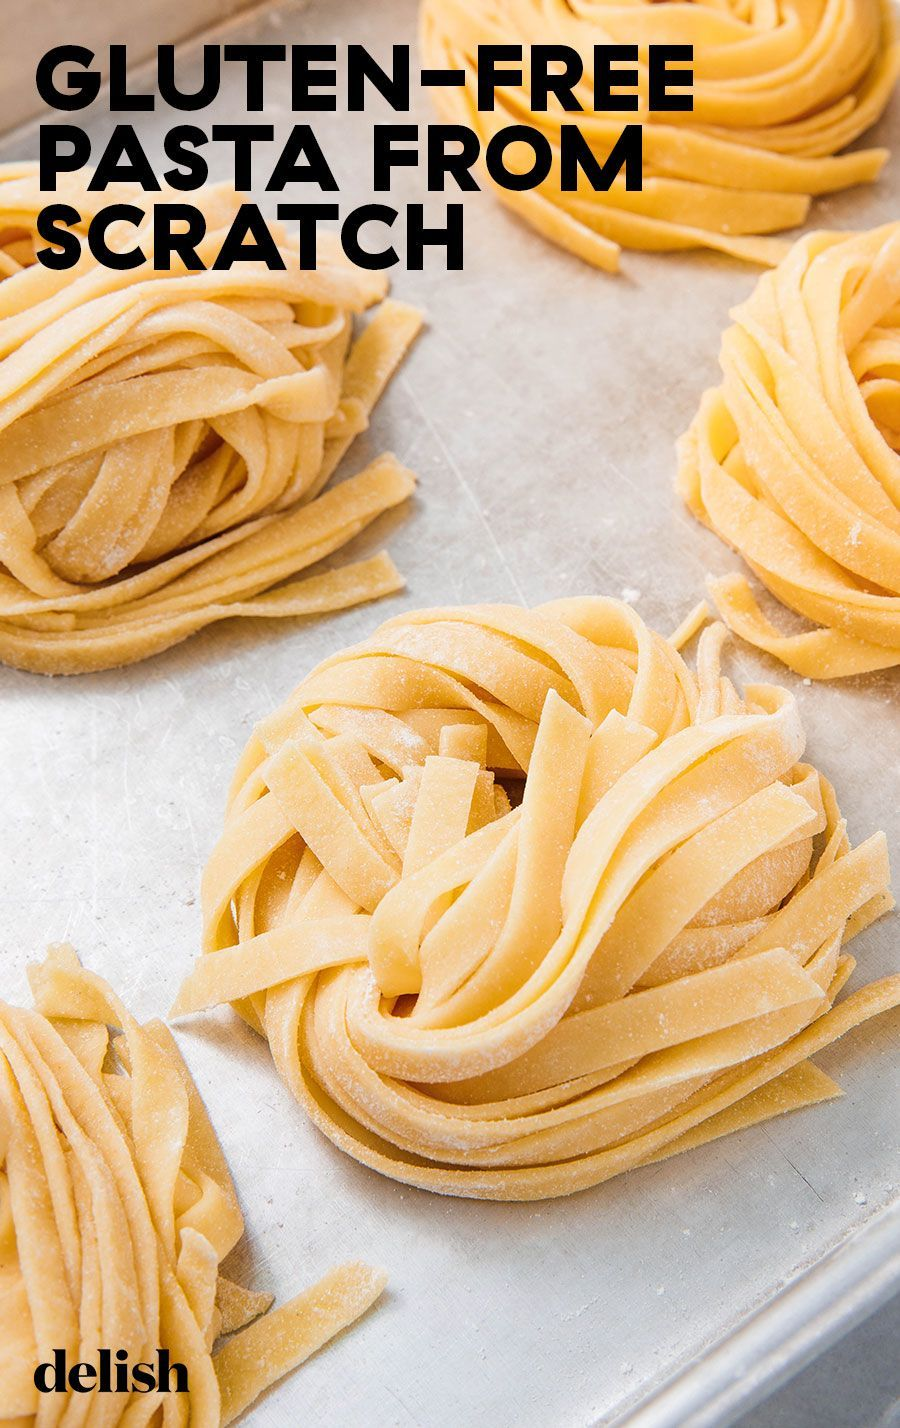 Gluten Free Pasta Will Satisfy Your Deepest Pasta Cravings Recipe In 2020 Gluten Free Pasta Recipes Gluten Free Snacks